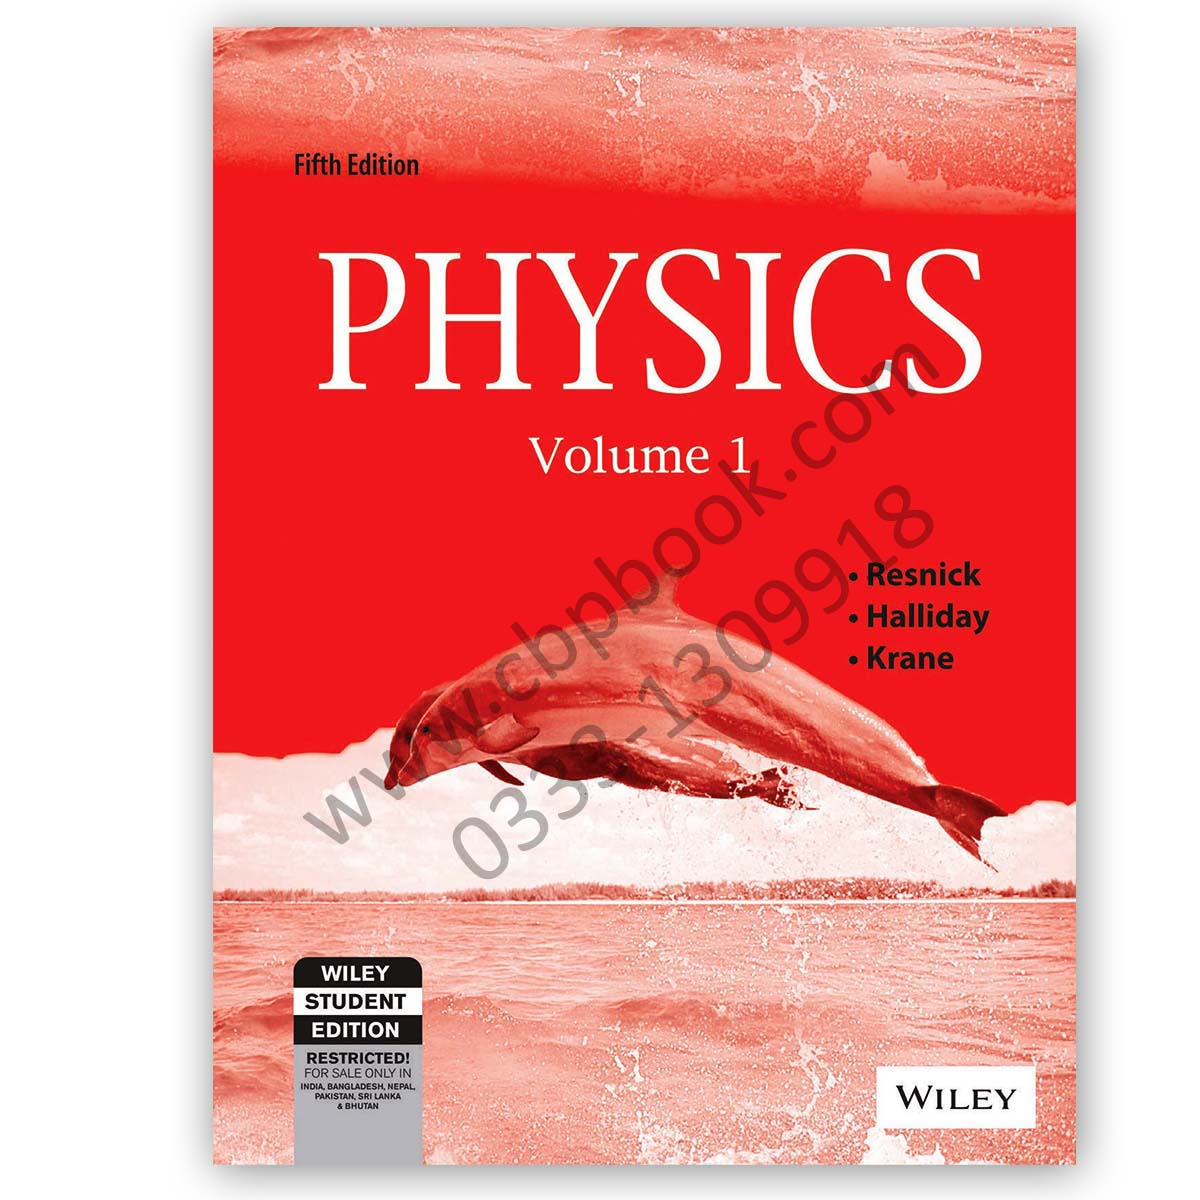 physics volume 1 5th edition resnick, halliday, krane - wiley